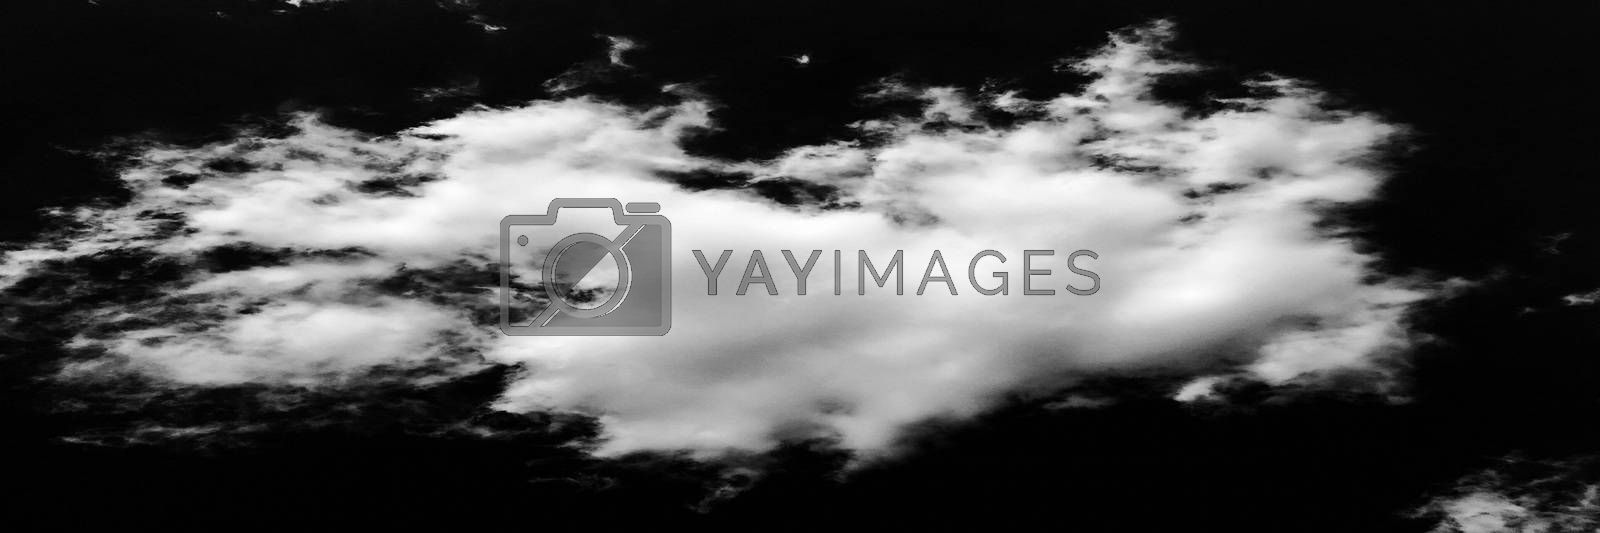 Isolated white clouds on black sky background. Cloud. Black Sky. by titco